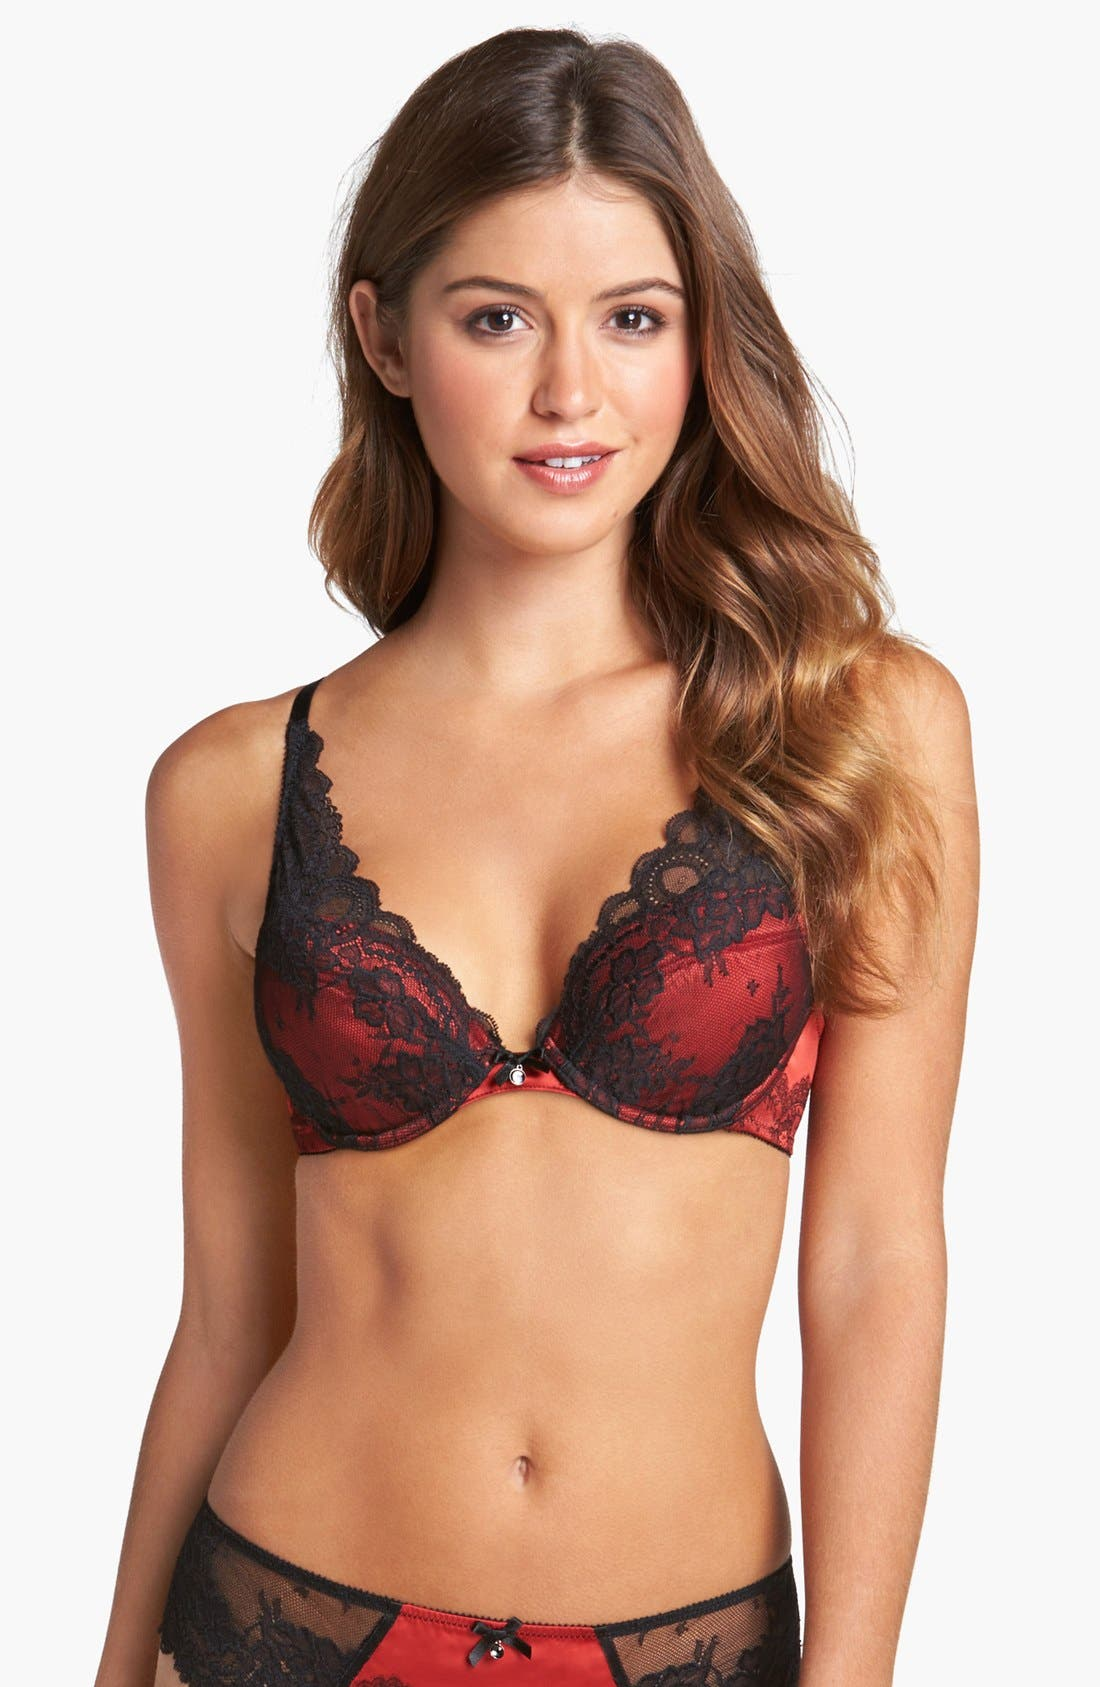 Main Image - Chantelle Intimates 'Paris Paris' Underwire Push Up Bra